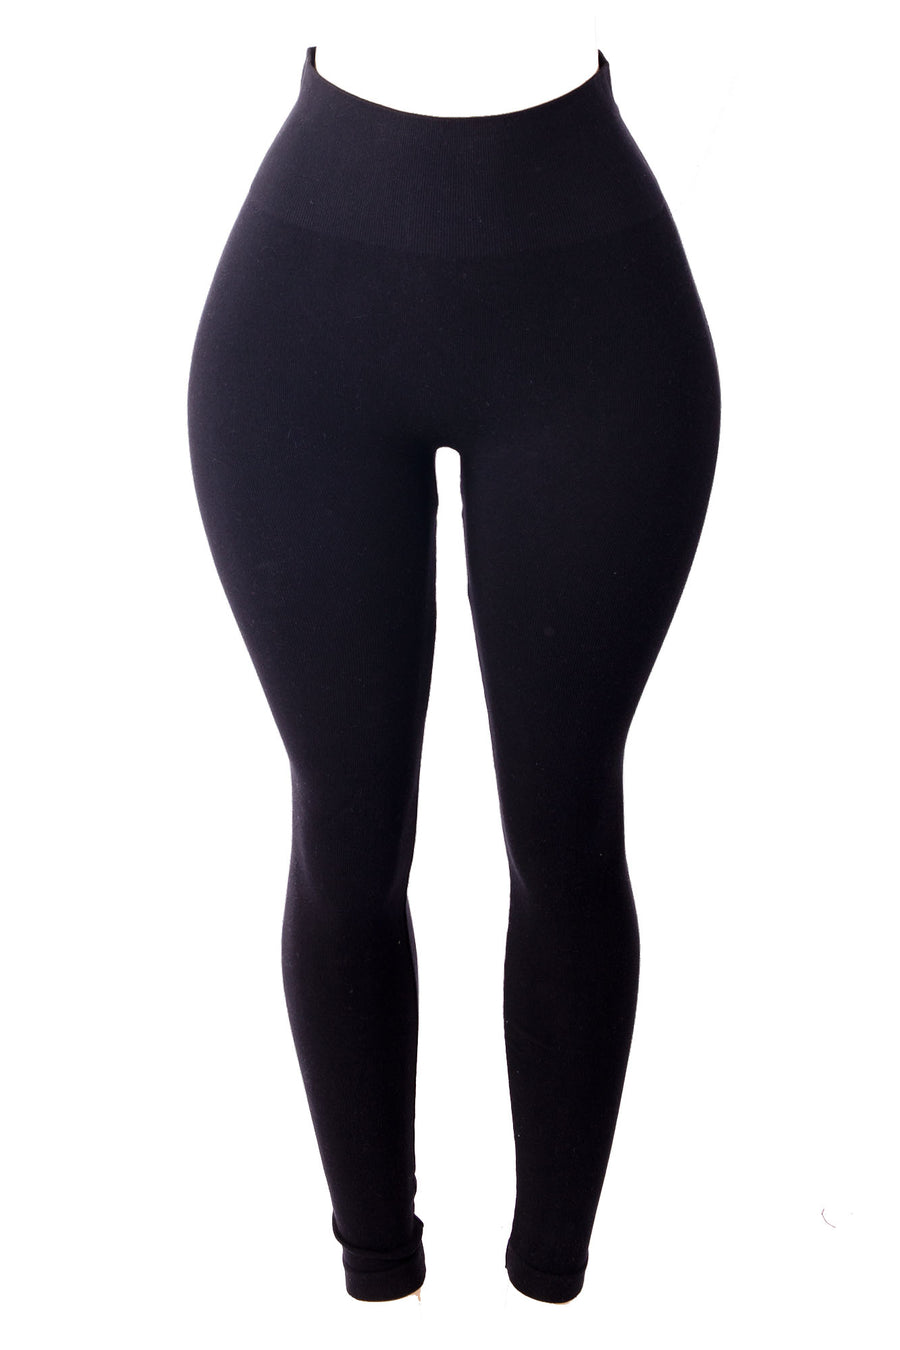 Babes Series Black Cotton Tummy Control Legging